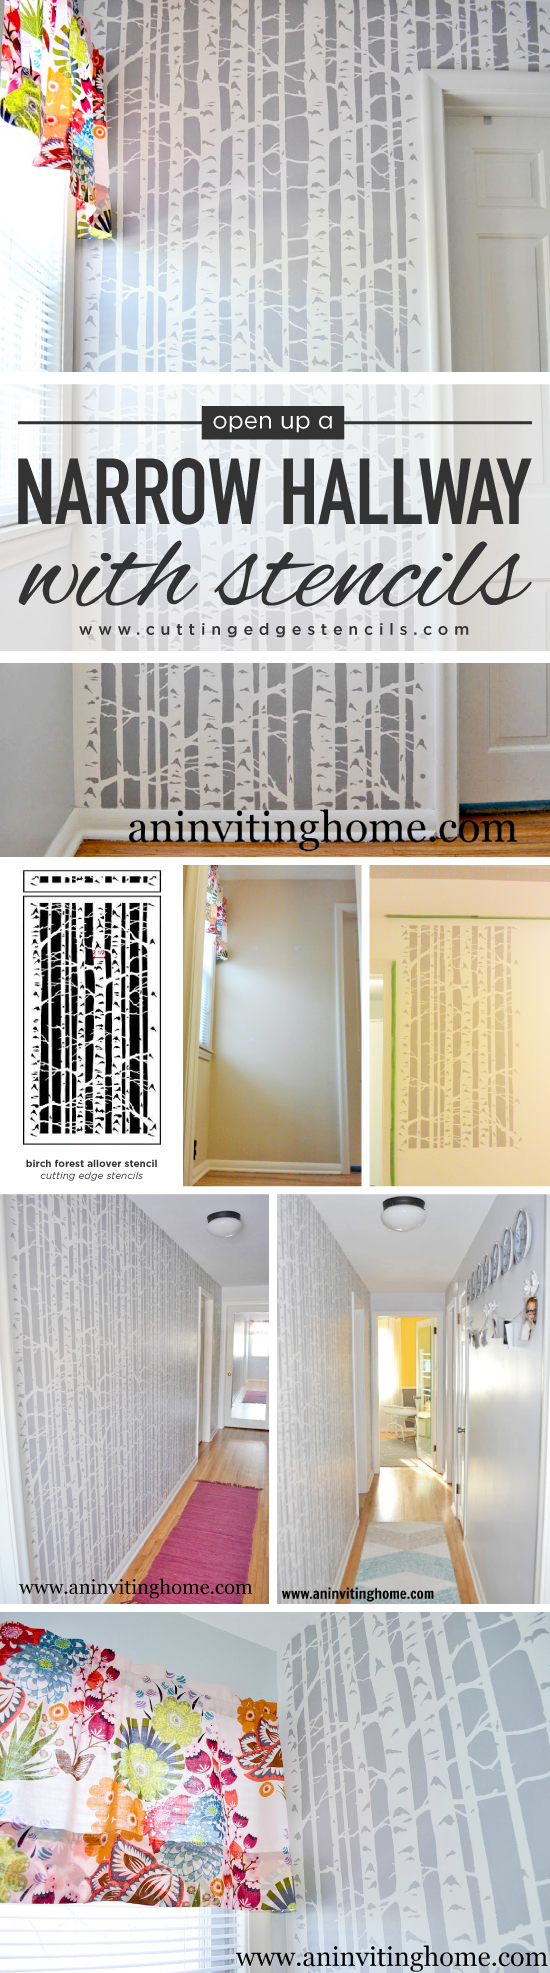 Cutting Edge Stencils shares a DIY stenciled hallway project using the Birch Forest Allover Stencil. http://www.cuttingedgestencils.com/allover-stencil-birch-forest.html